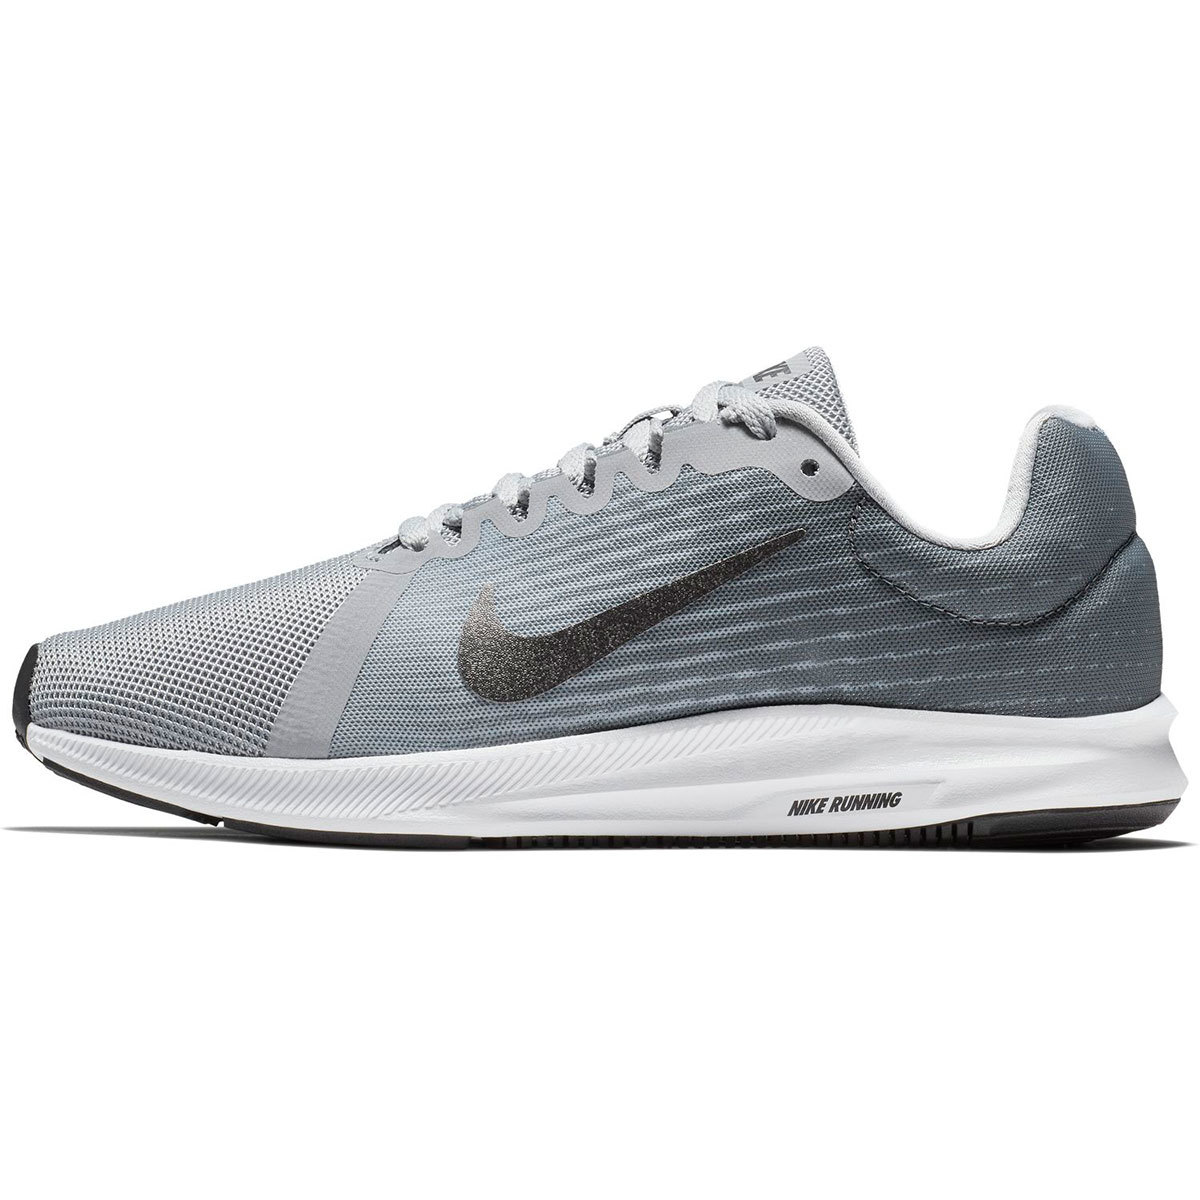 Downshifter 8 Running Shoes, Wide